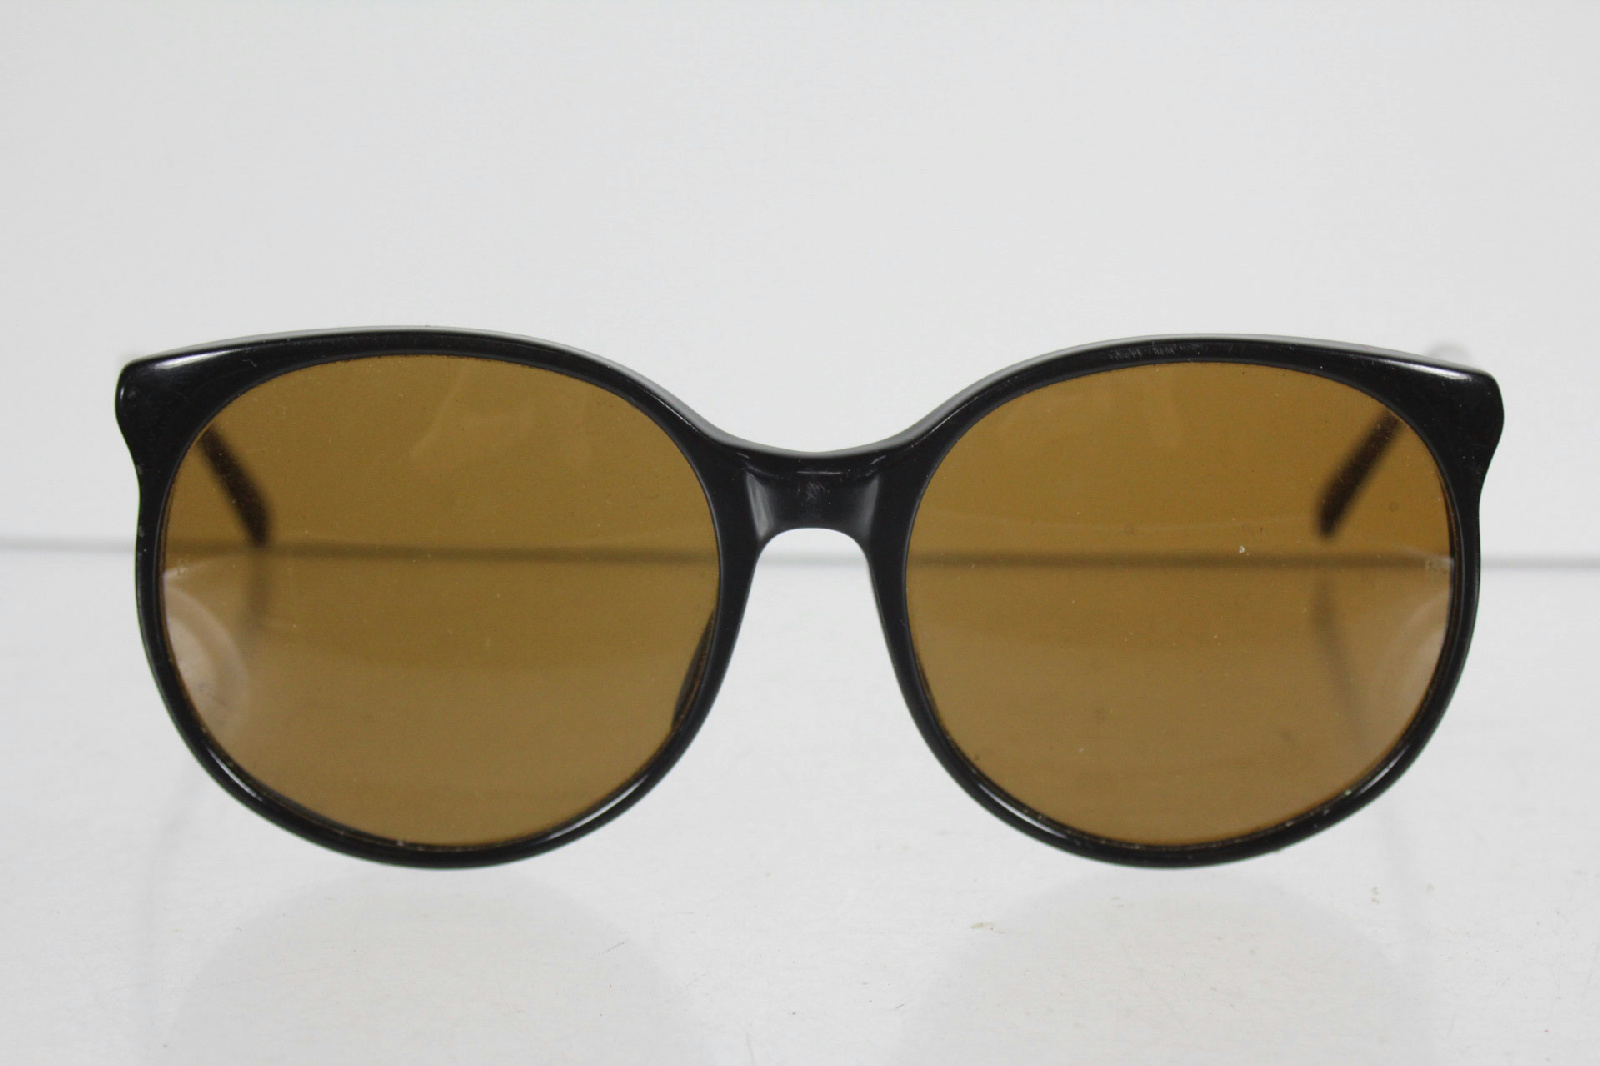 Ray Ban Round Frame Sunglasses : Ray Ban Round Skinny Frame Black Light Brown Lens ...